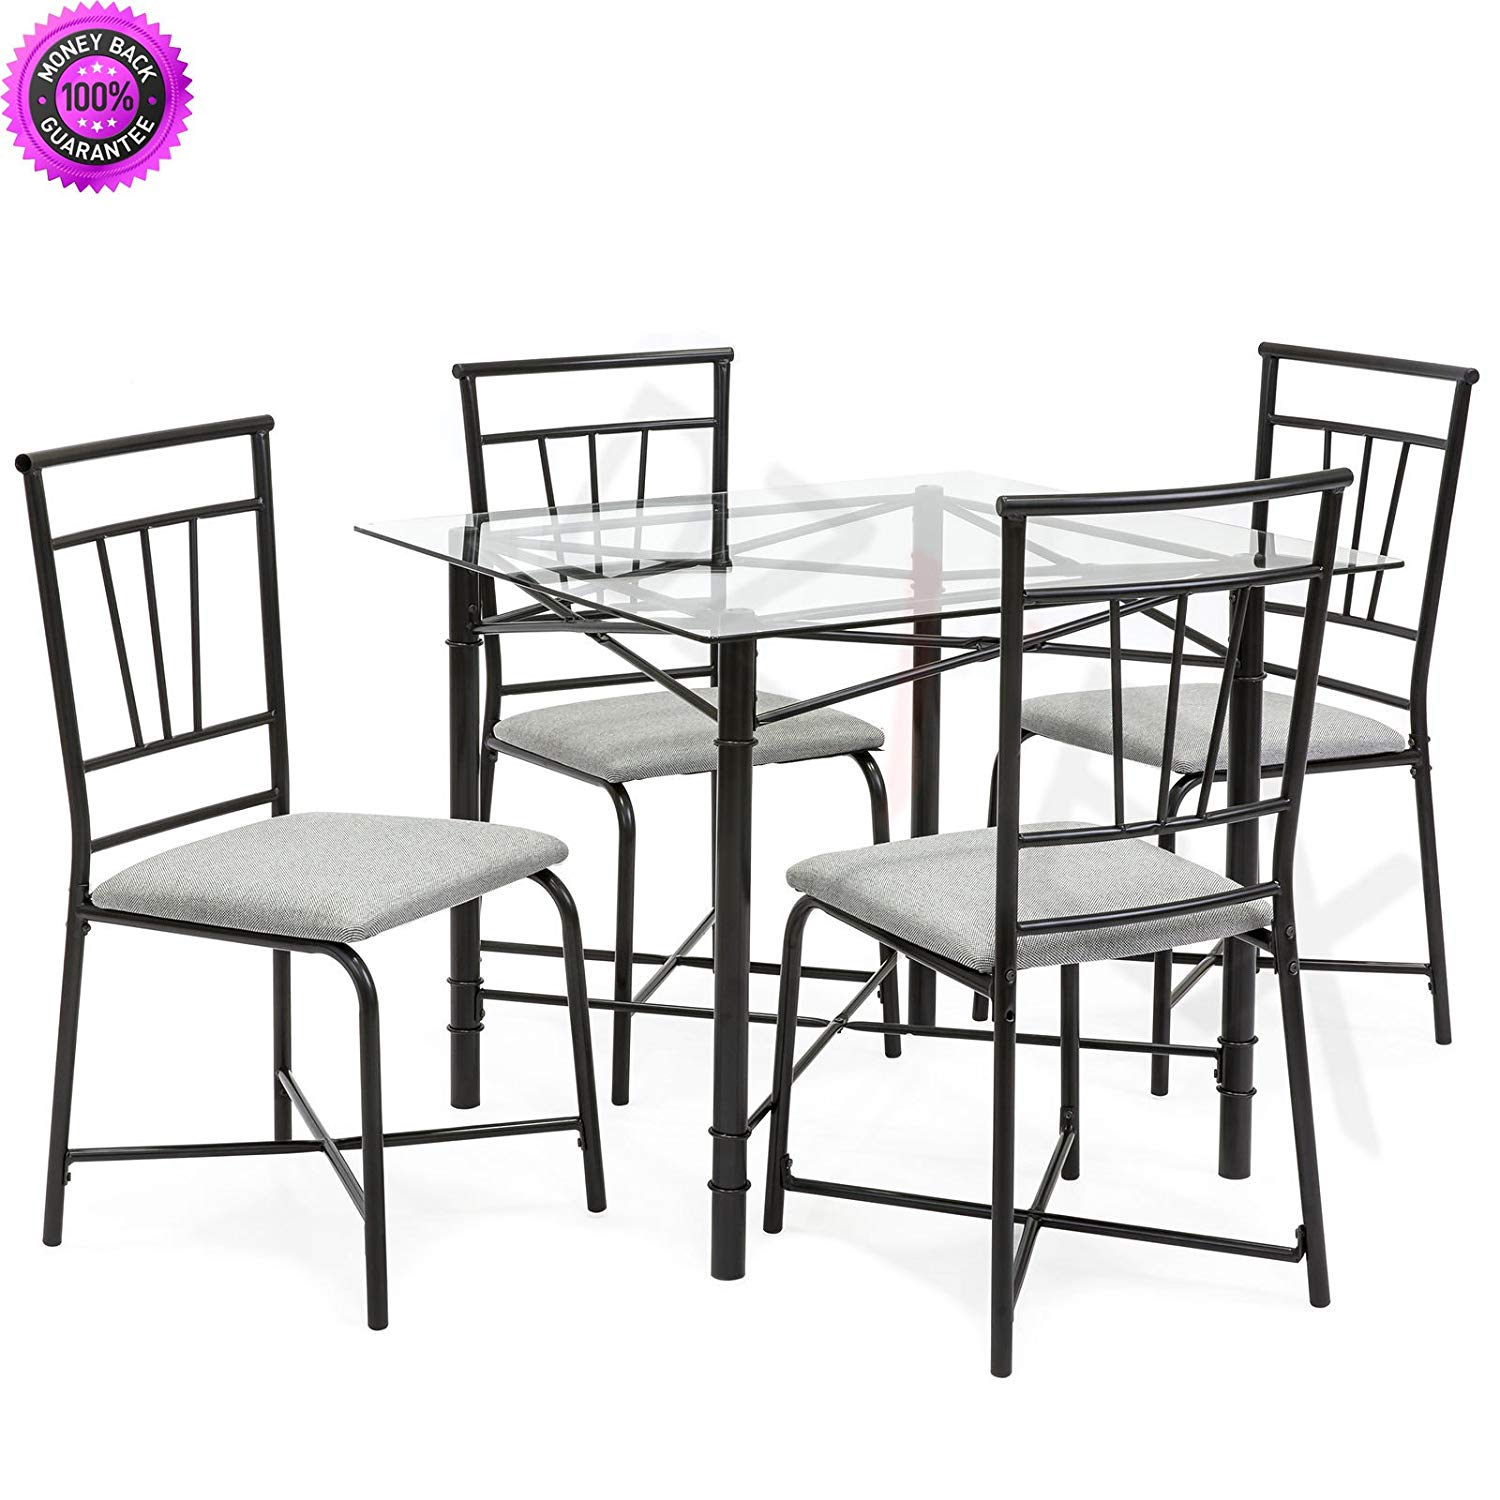 Cheap Childrens Tables And Chairs Sets, Find Childrens